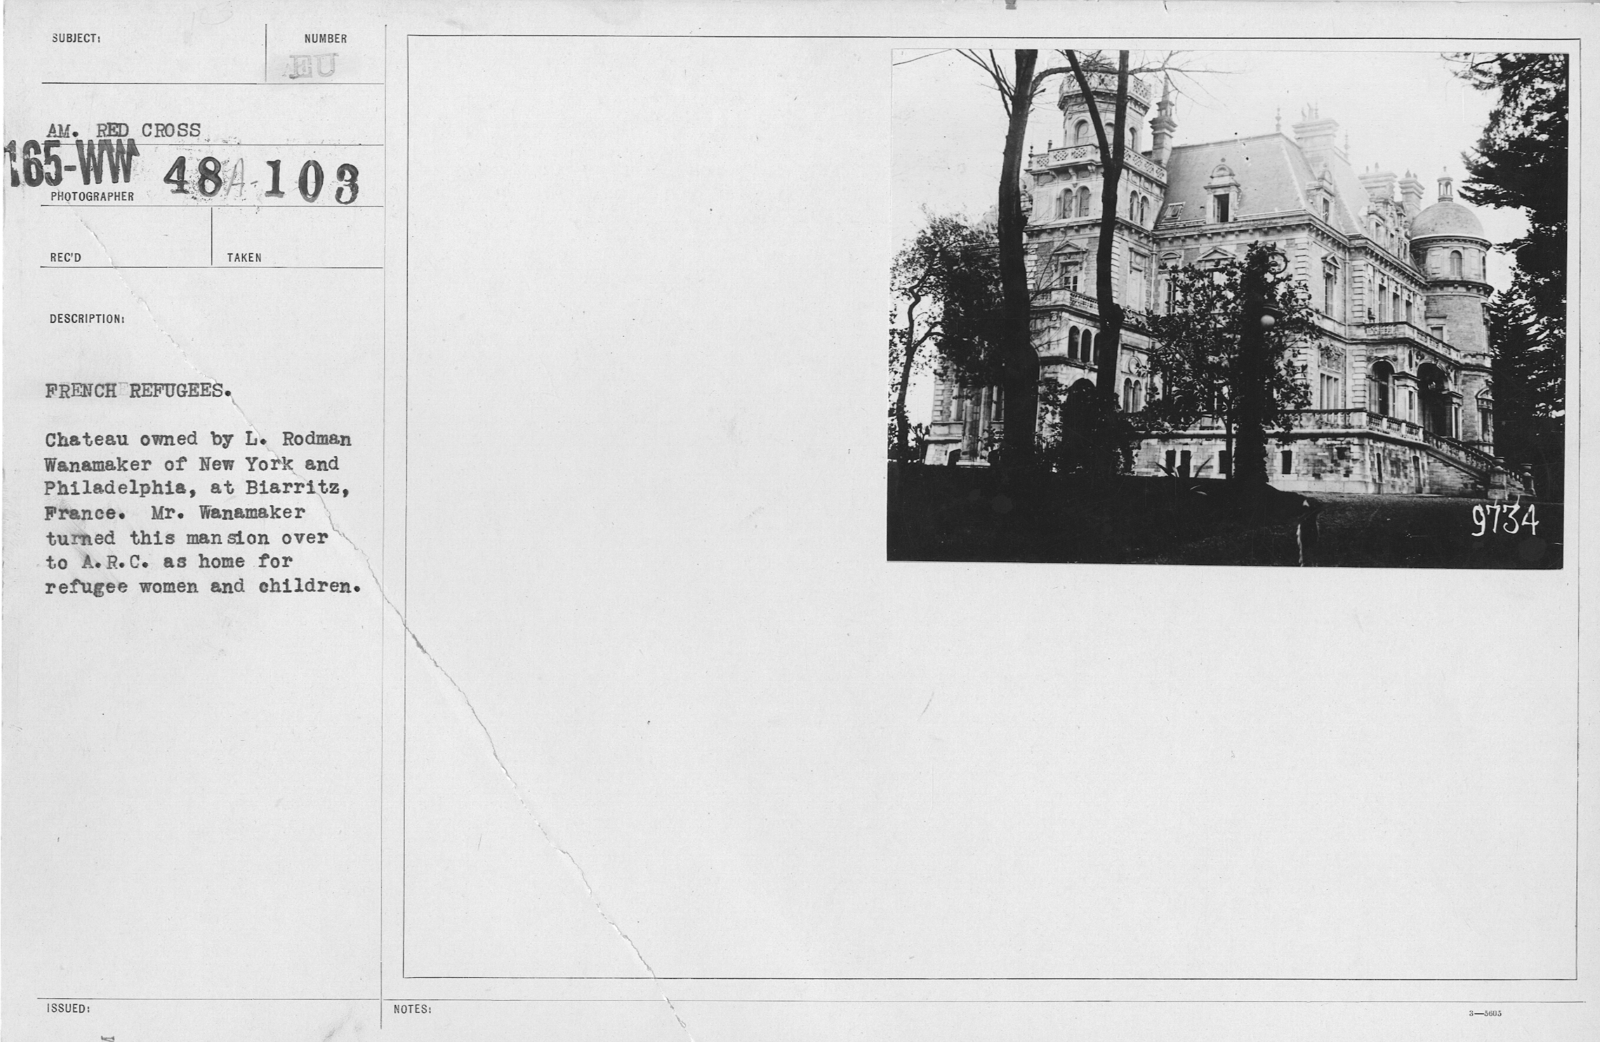 American Red Cross - Refugees - French refugees. Chateau owned by L. Rodman Wanamaker of New York and Philadelphia, at Biarritz, France. Mr. Wanamaker turned this mansion over to A.R.C. as home for refugee women and children